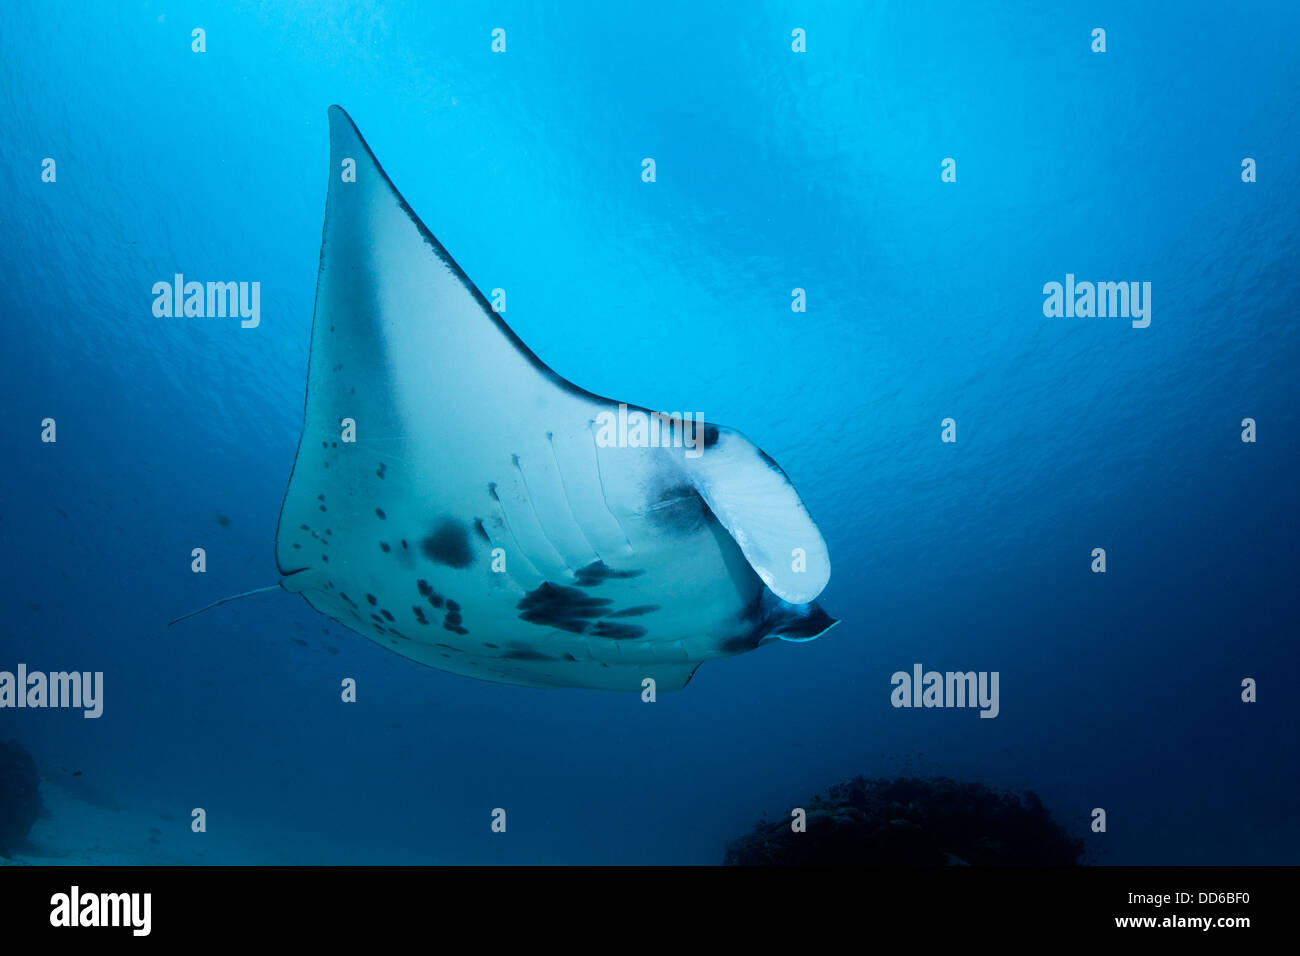 Manta ray close-focus wide-angle image with blue water background. - Stock Image